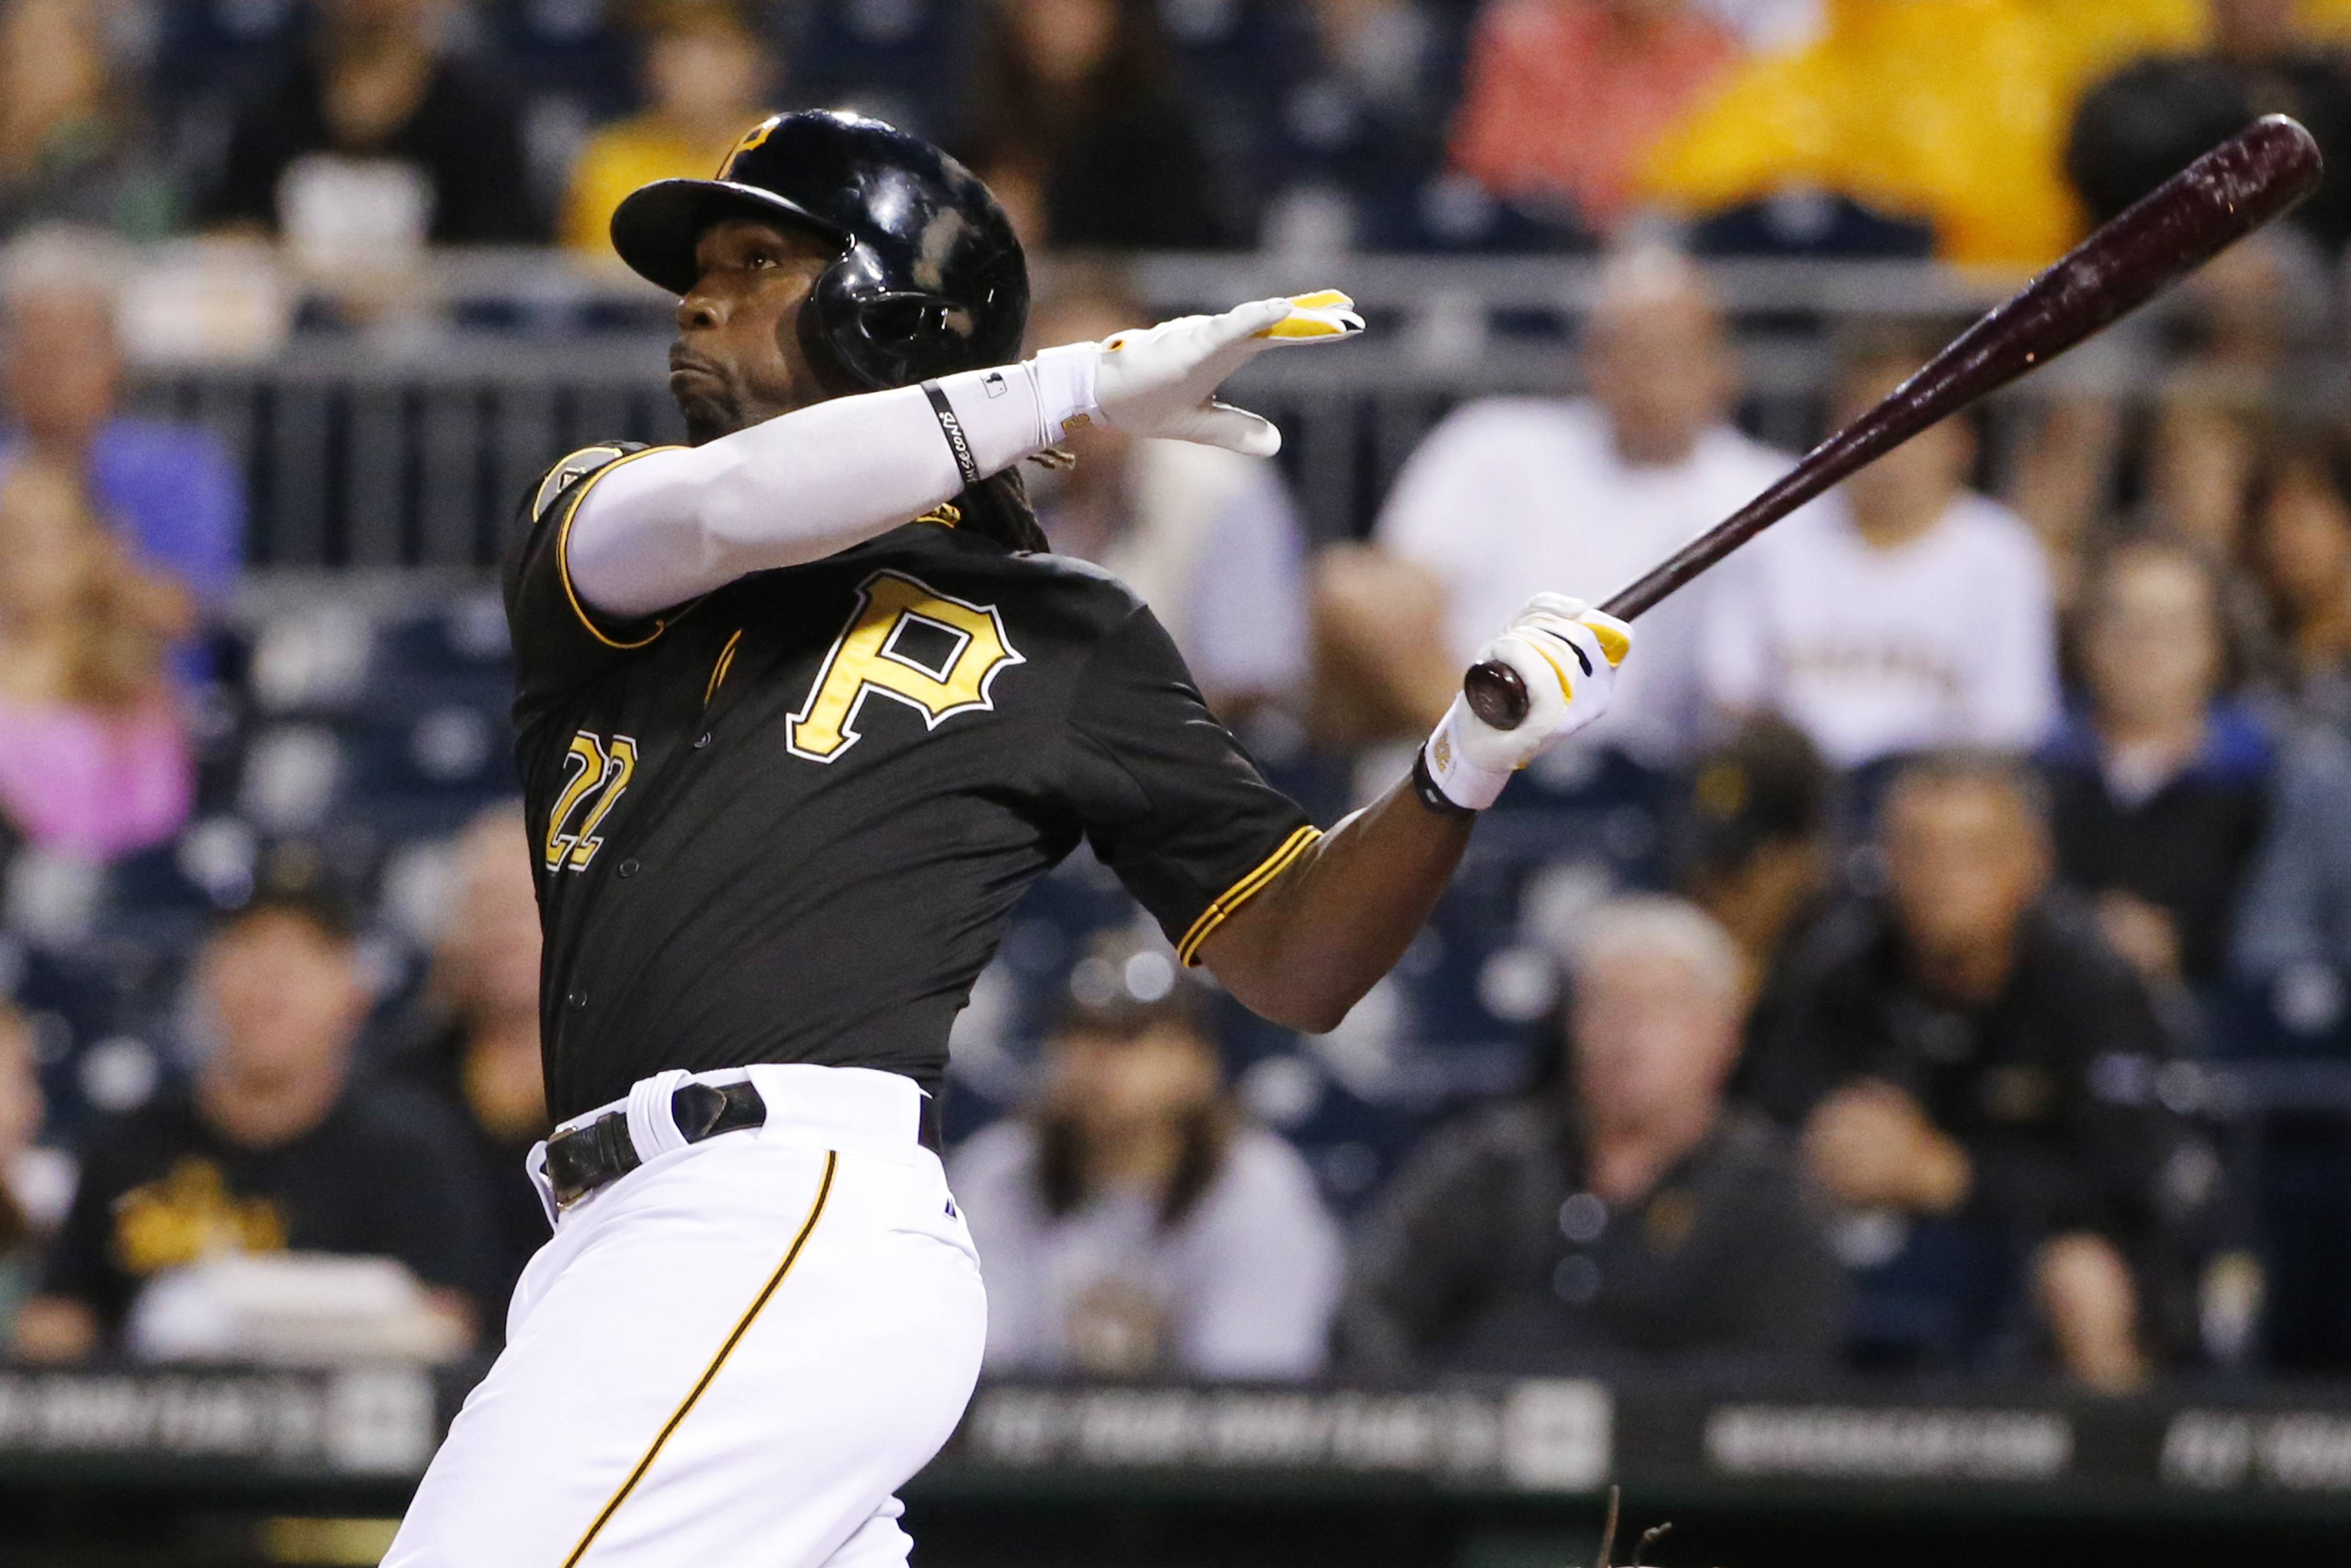 Pittsburgh Pirates' Andrew McCutchen (22) hits a two-run home run off Chicago Cubs starting pitcher Jason Hammel during the first inning of a baseball game Wednesday in Pittsburgh.